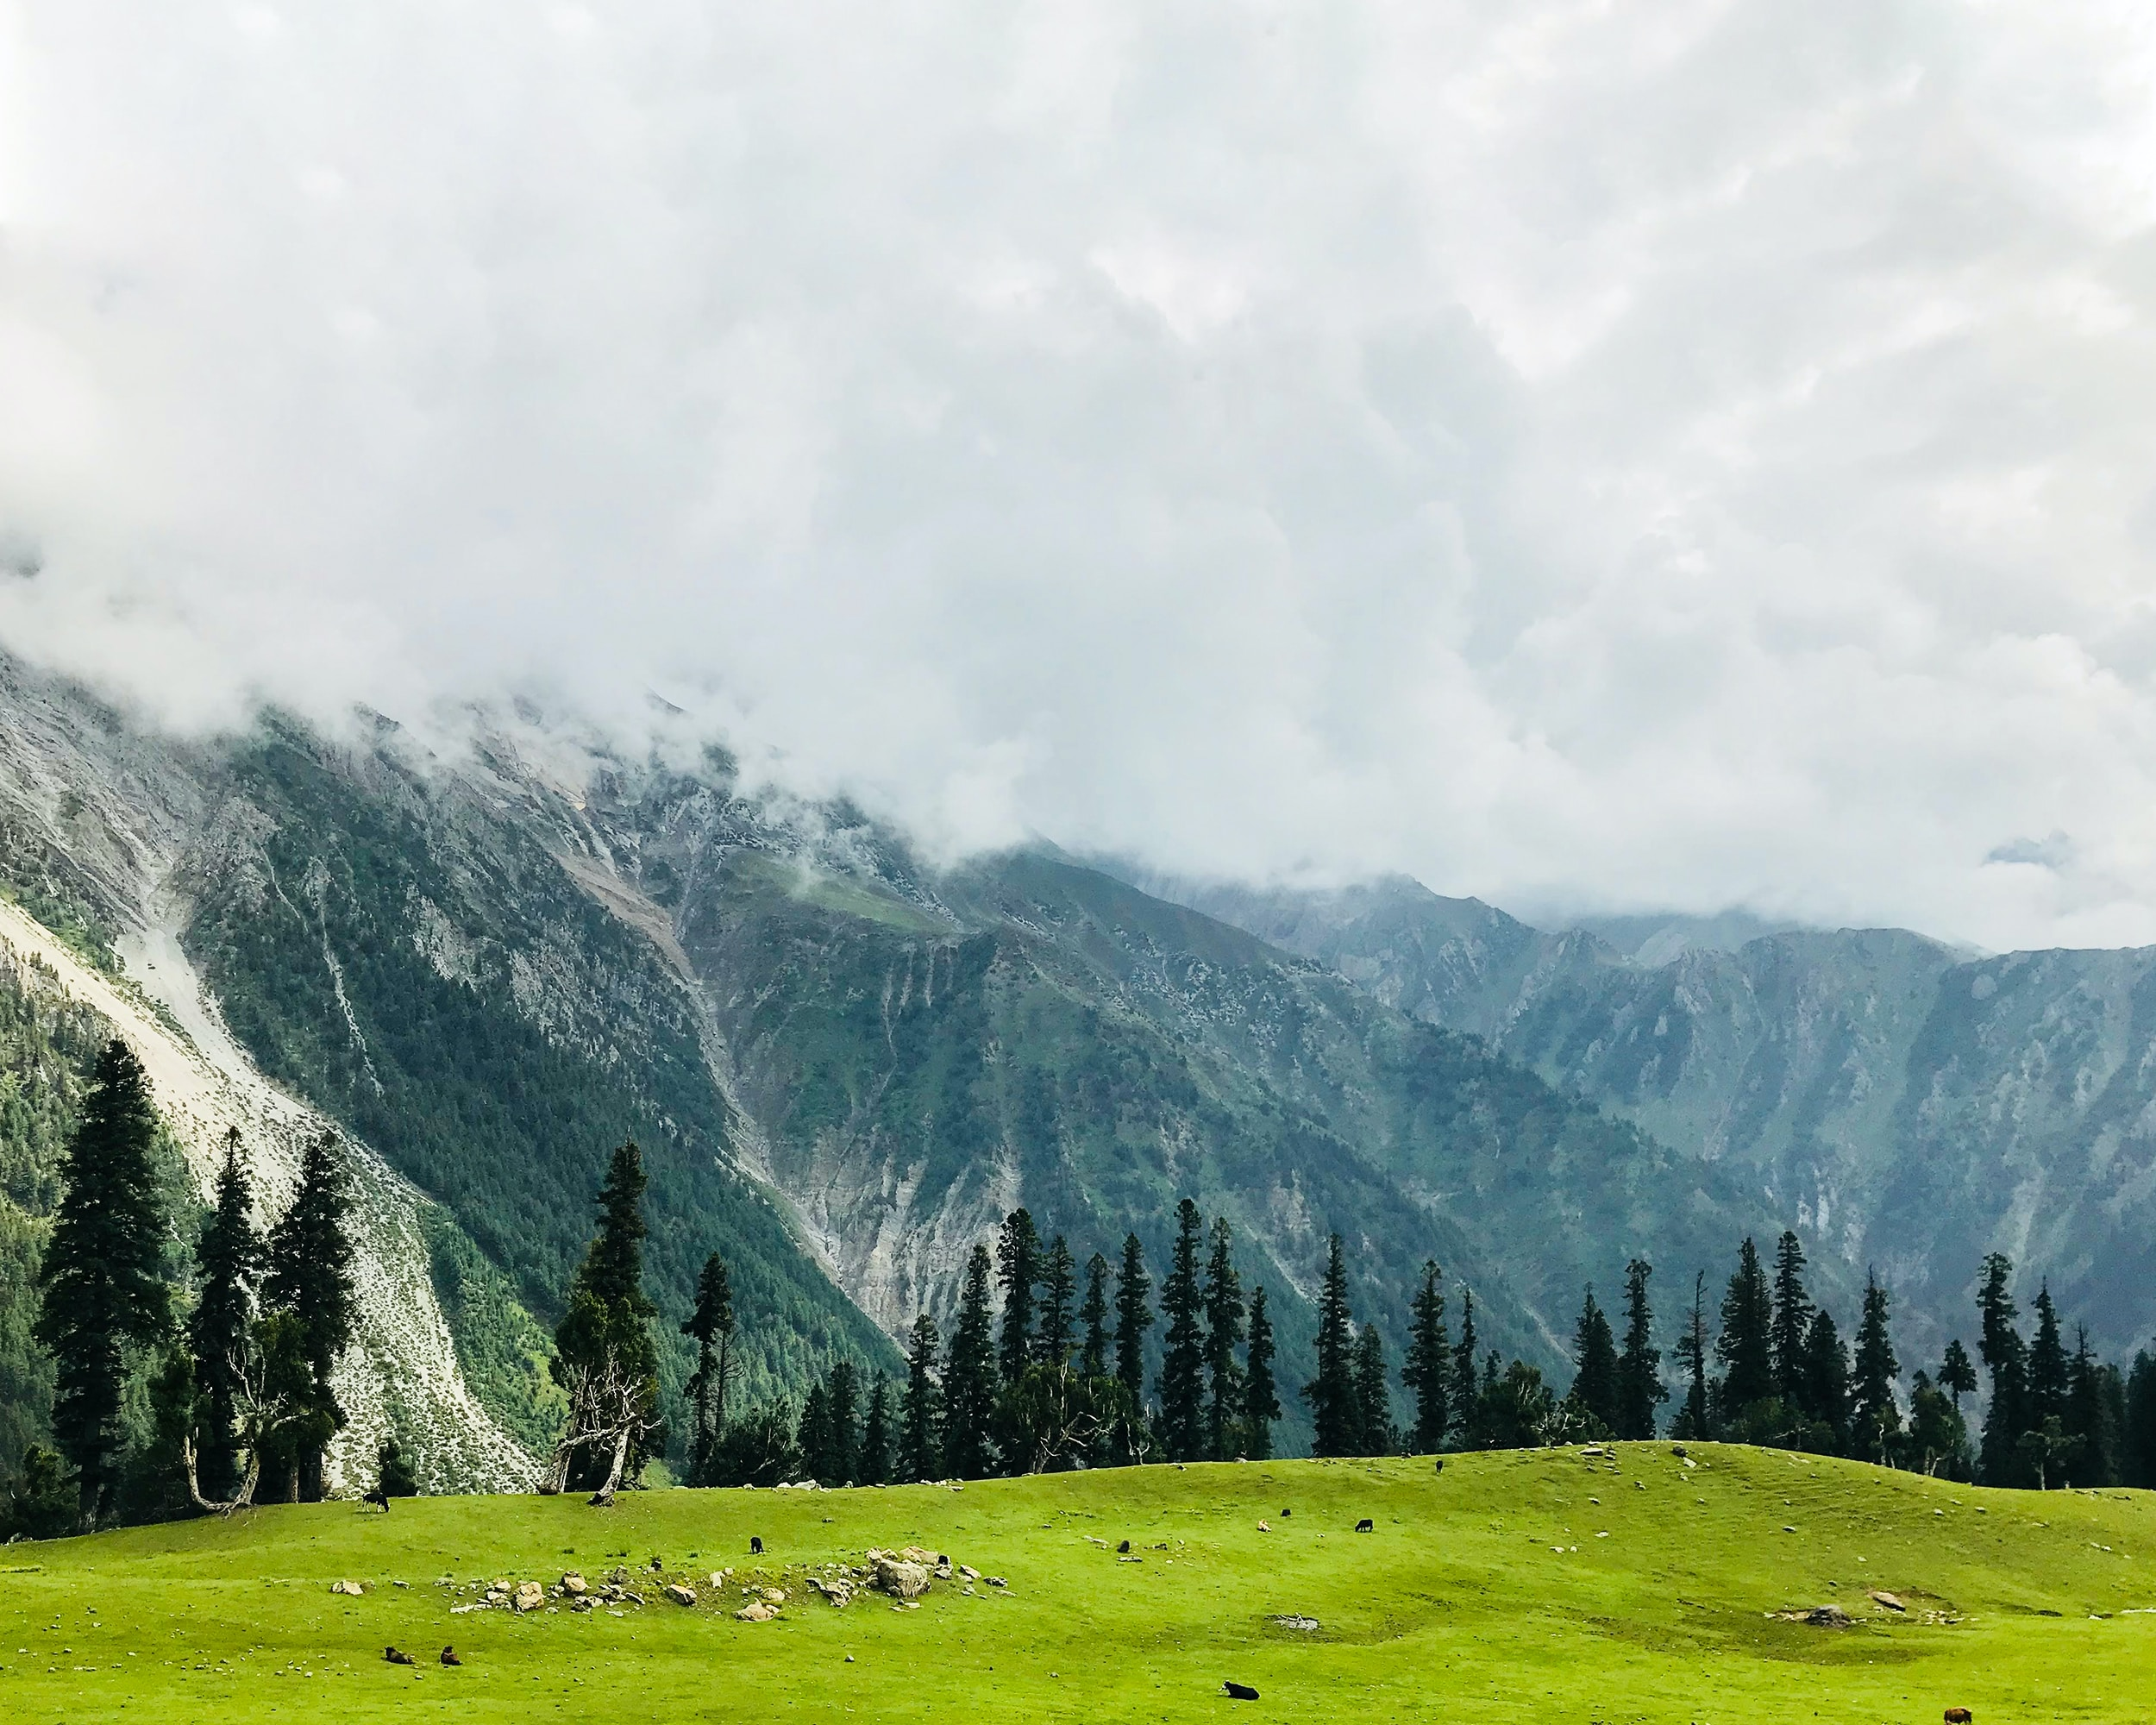 green grass field near green trees and mountain under white clouds during daytime